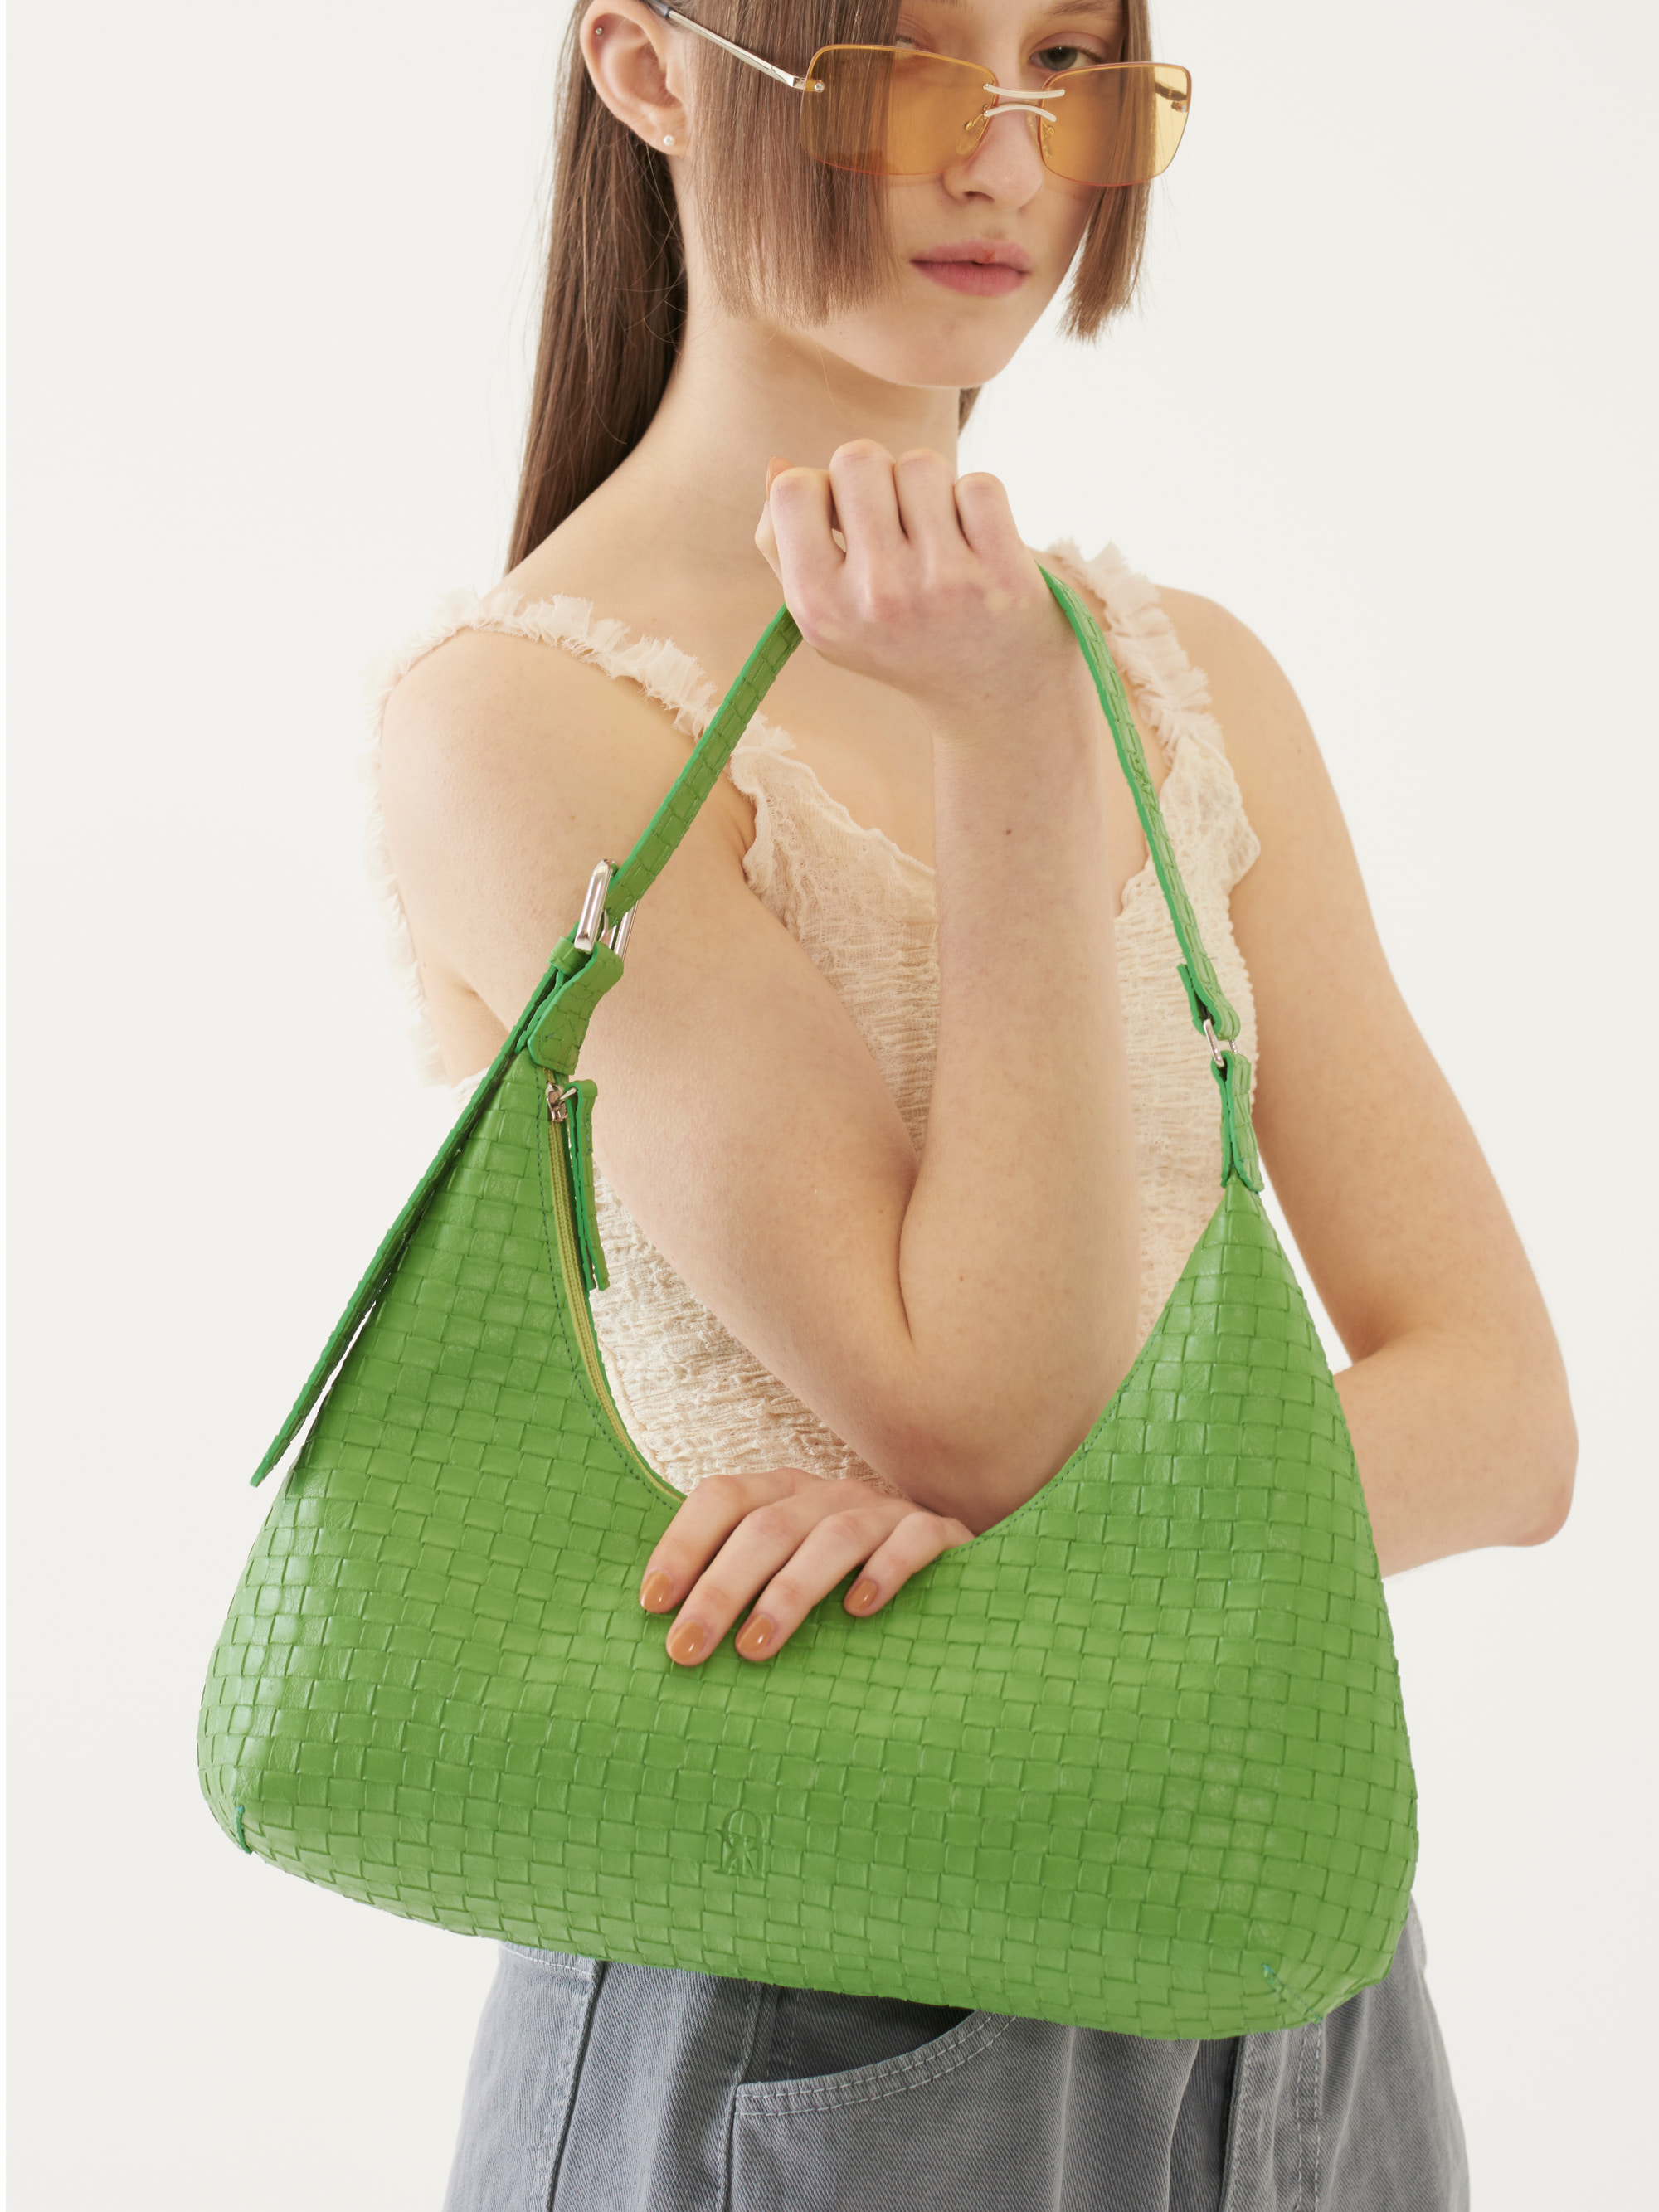 [Ship Date: 5/7] CURVED SHAPE BAG (GREEN)